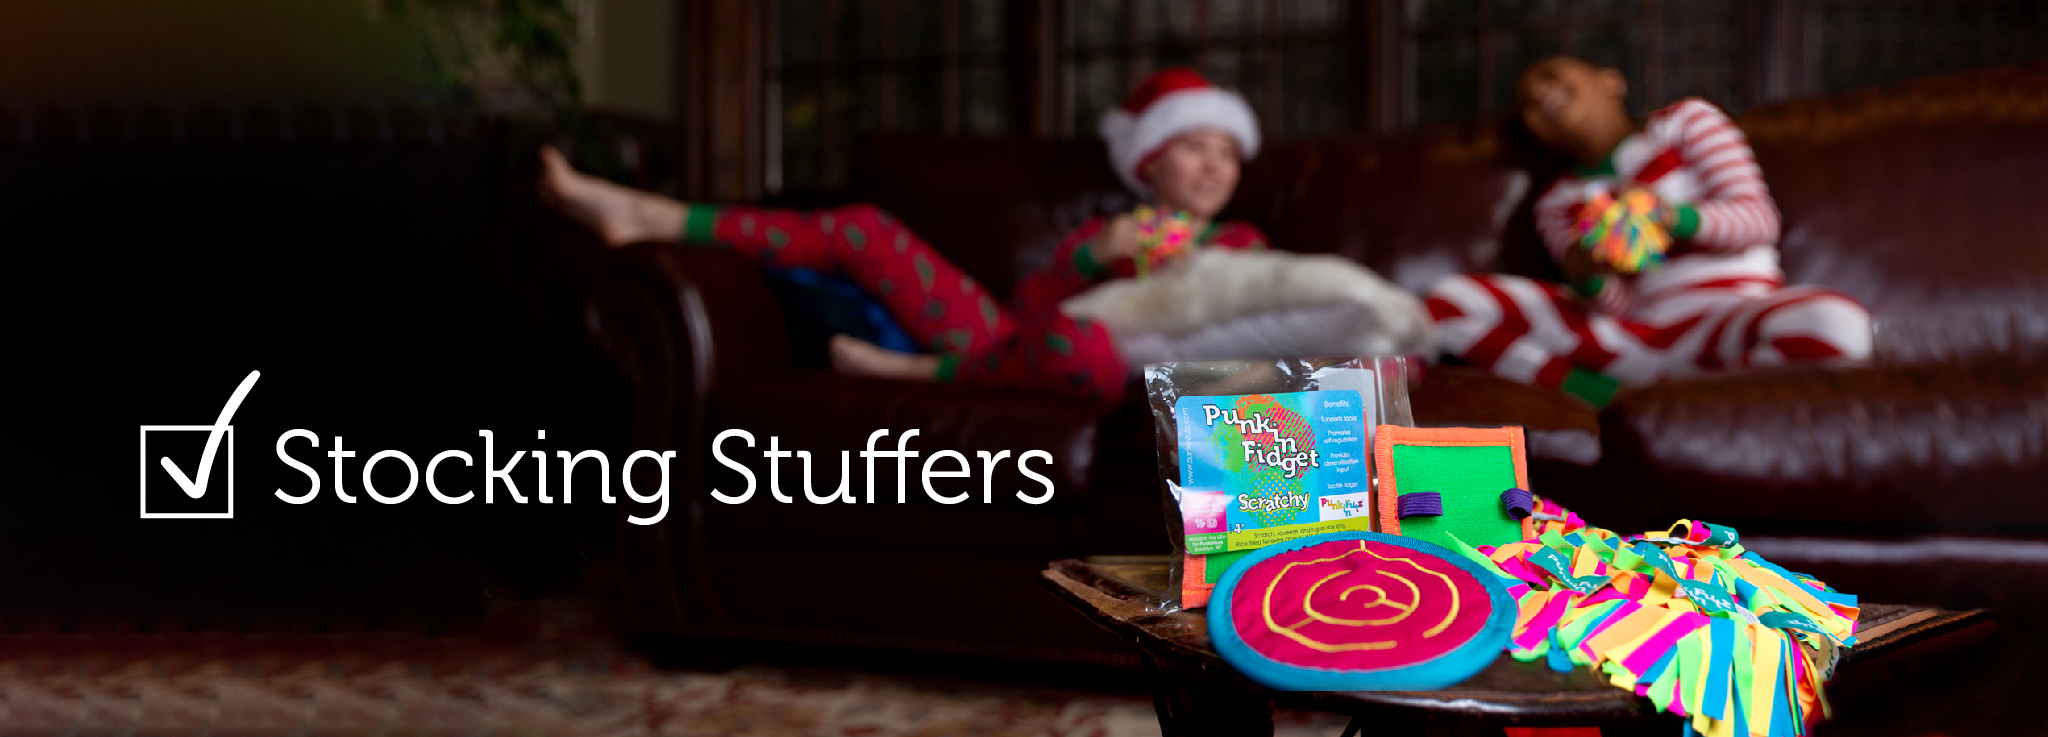 PunkinFutz Stocking Stuffers